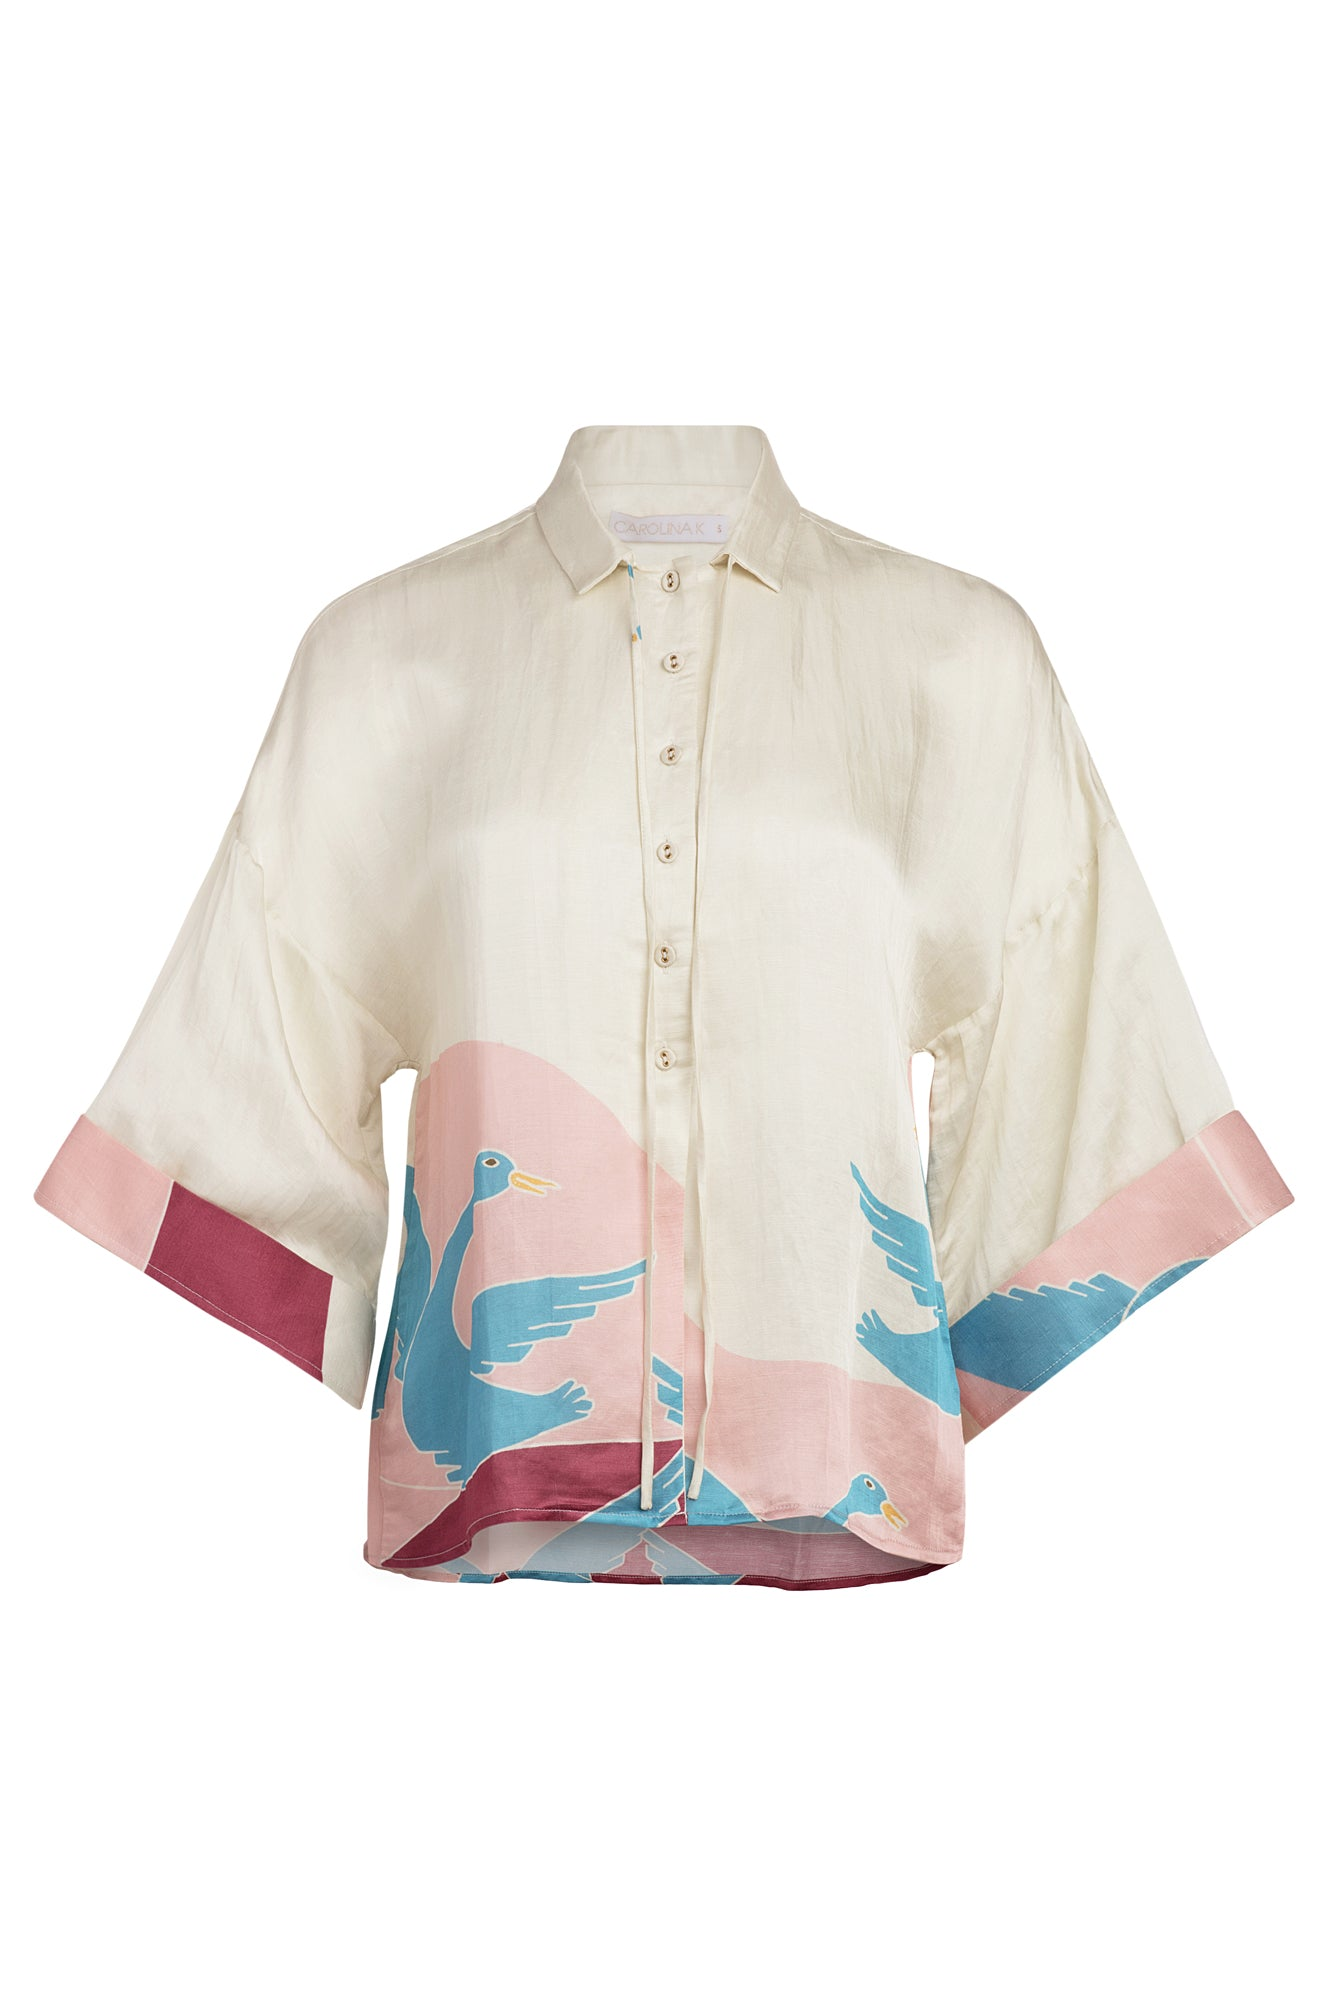 Carolina K Kimono Top in Bathing Birds Cream